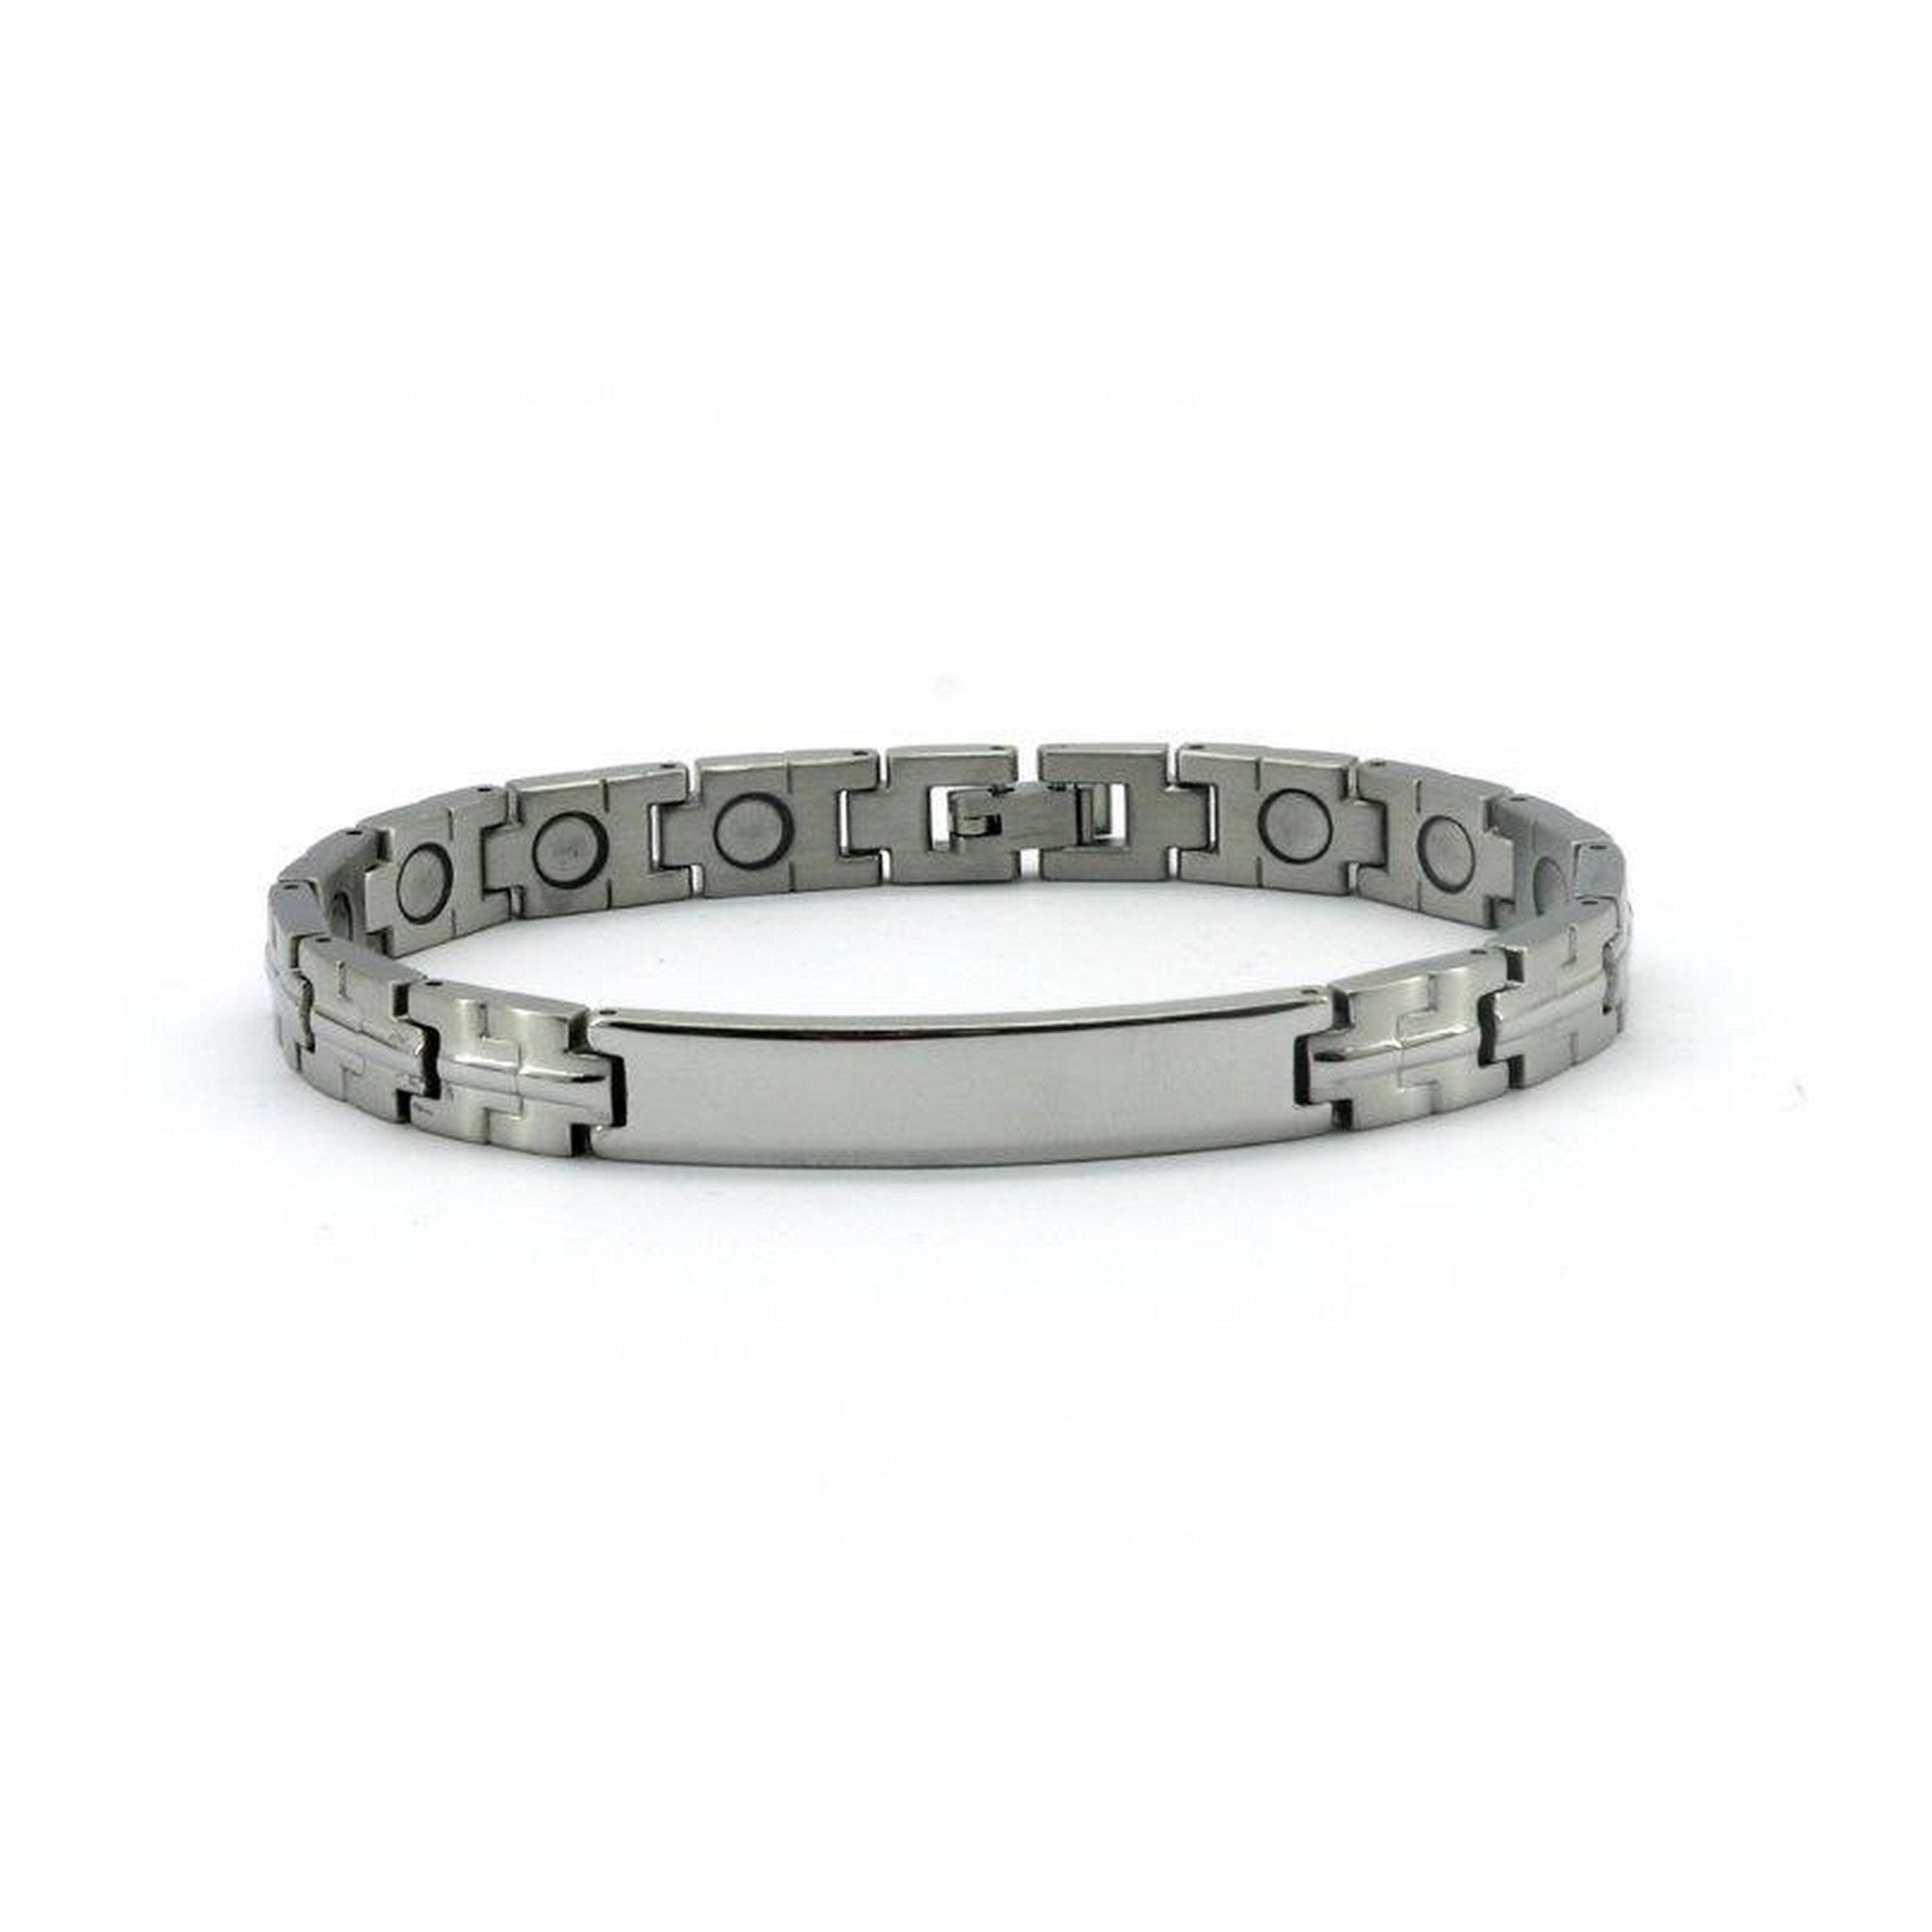 Magnetic Stainless Link Health Bracelet Brushed Silver Colour with Engraving Plate, 3000 Gauss